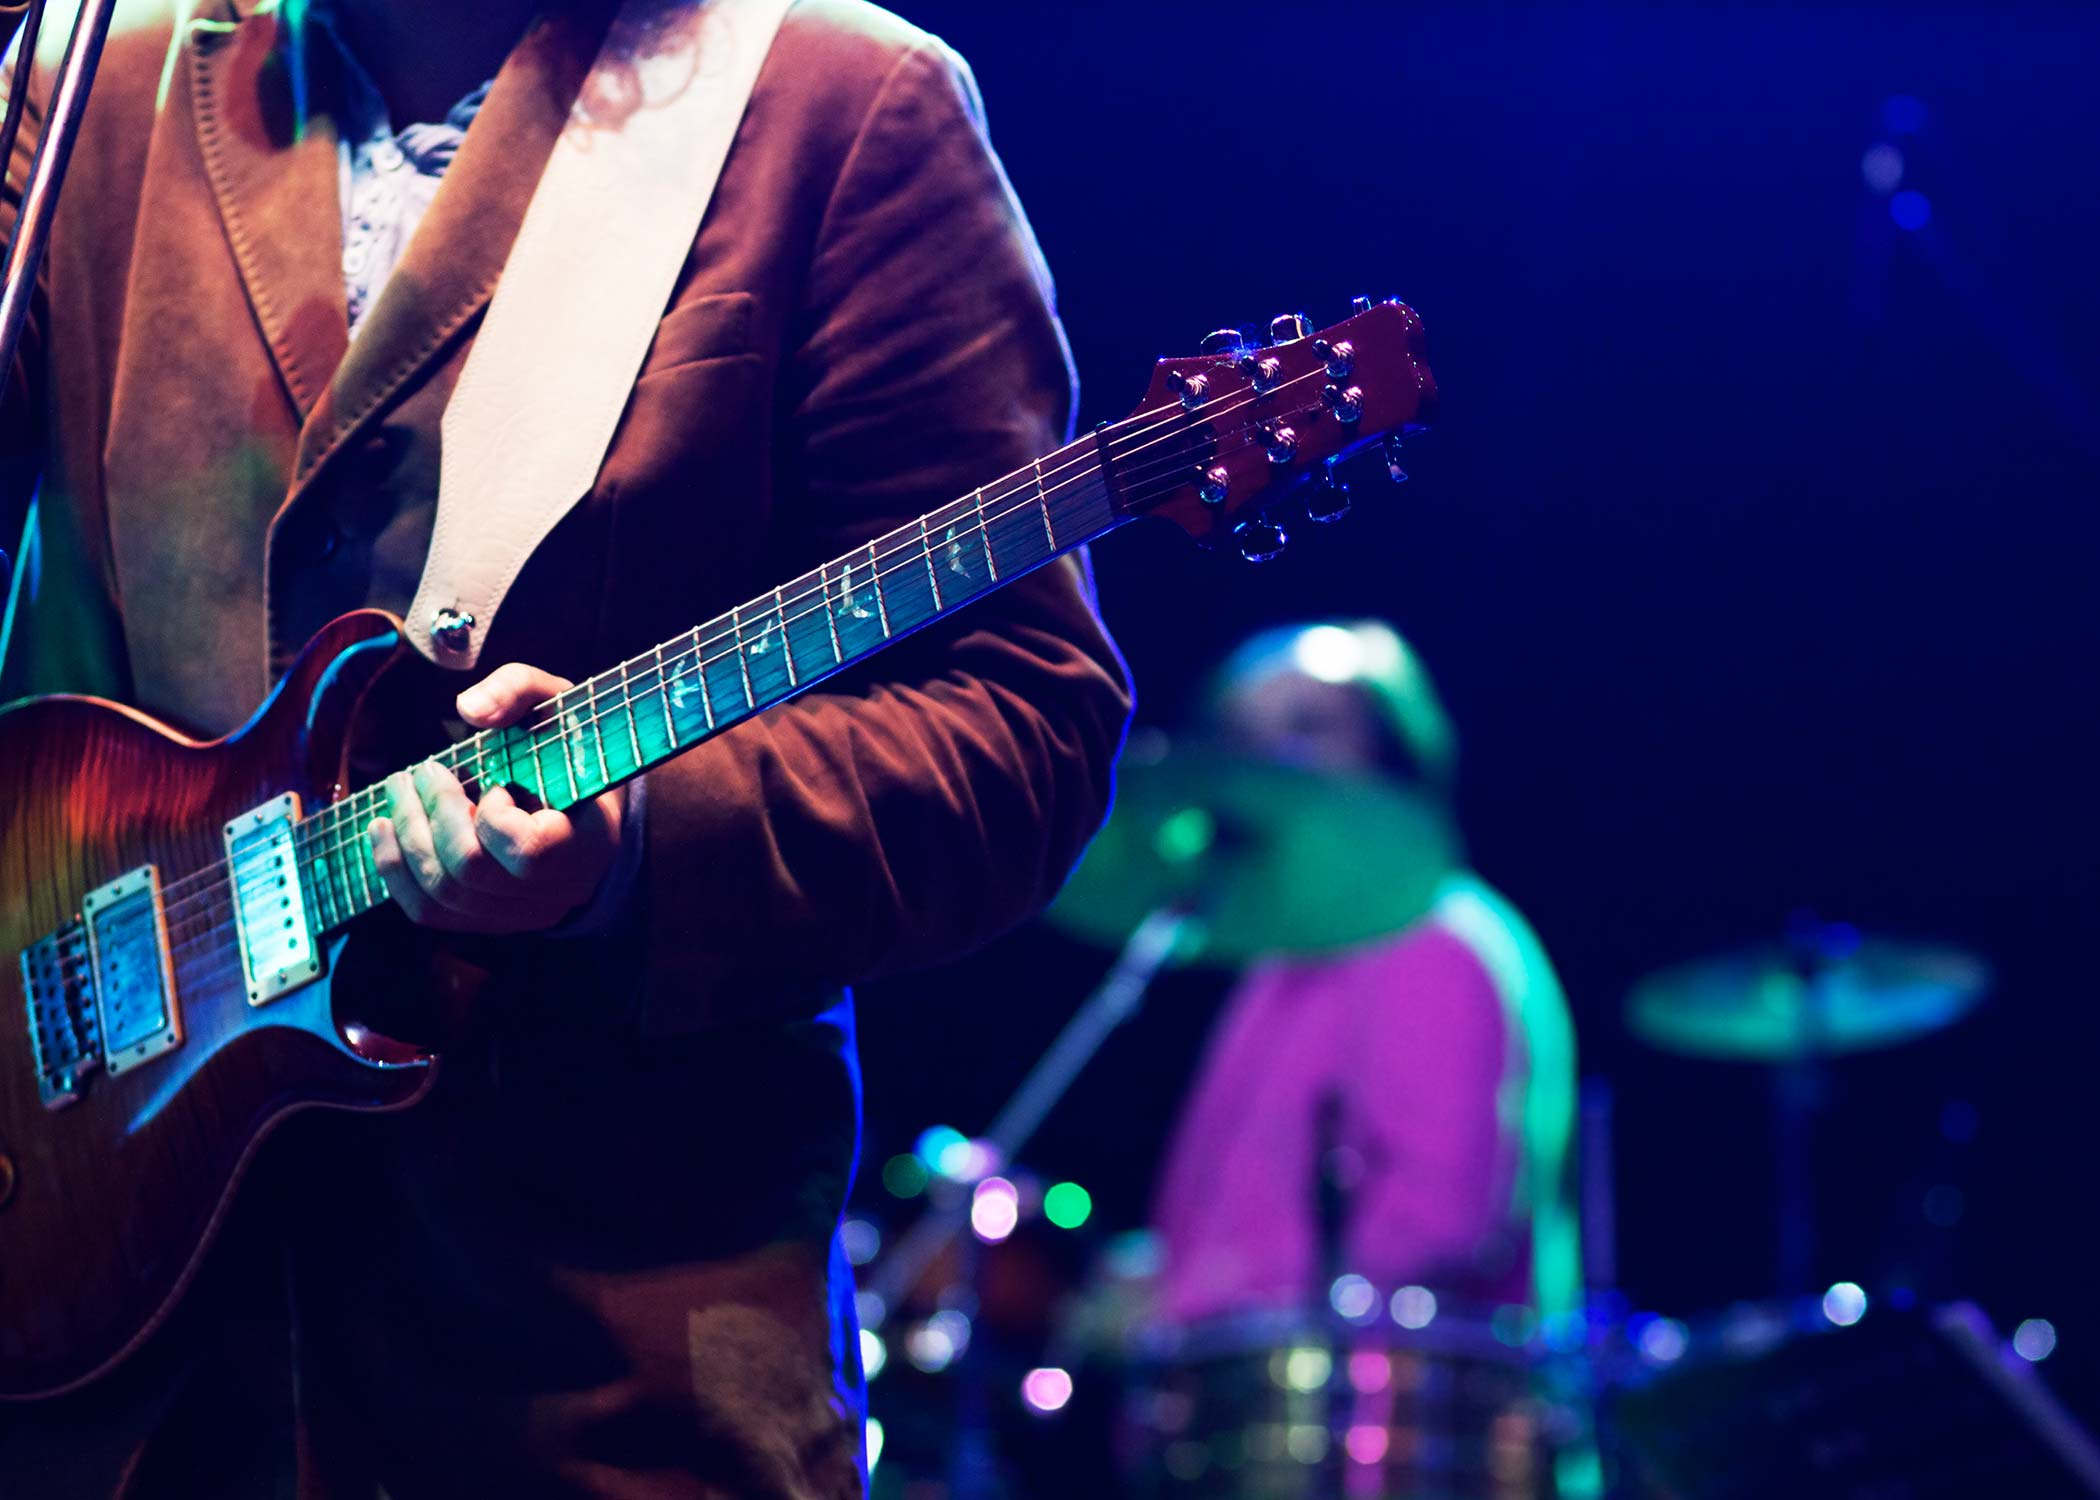 Musician holding a guitar with a drummer in the background